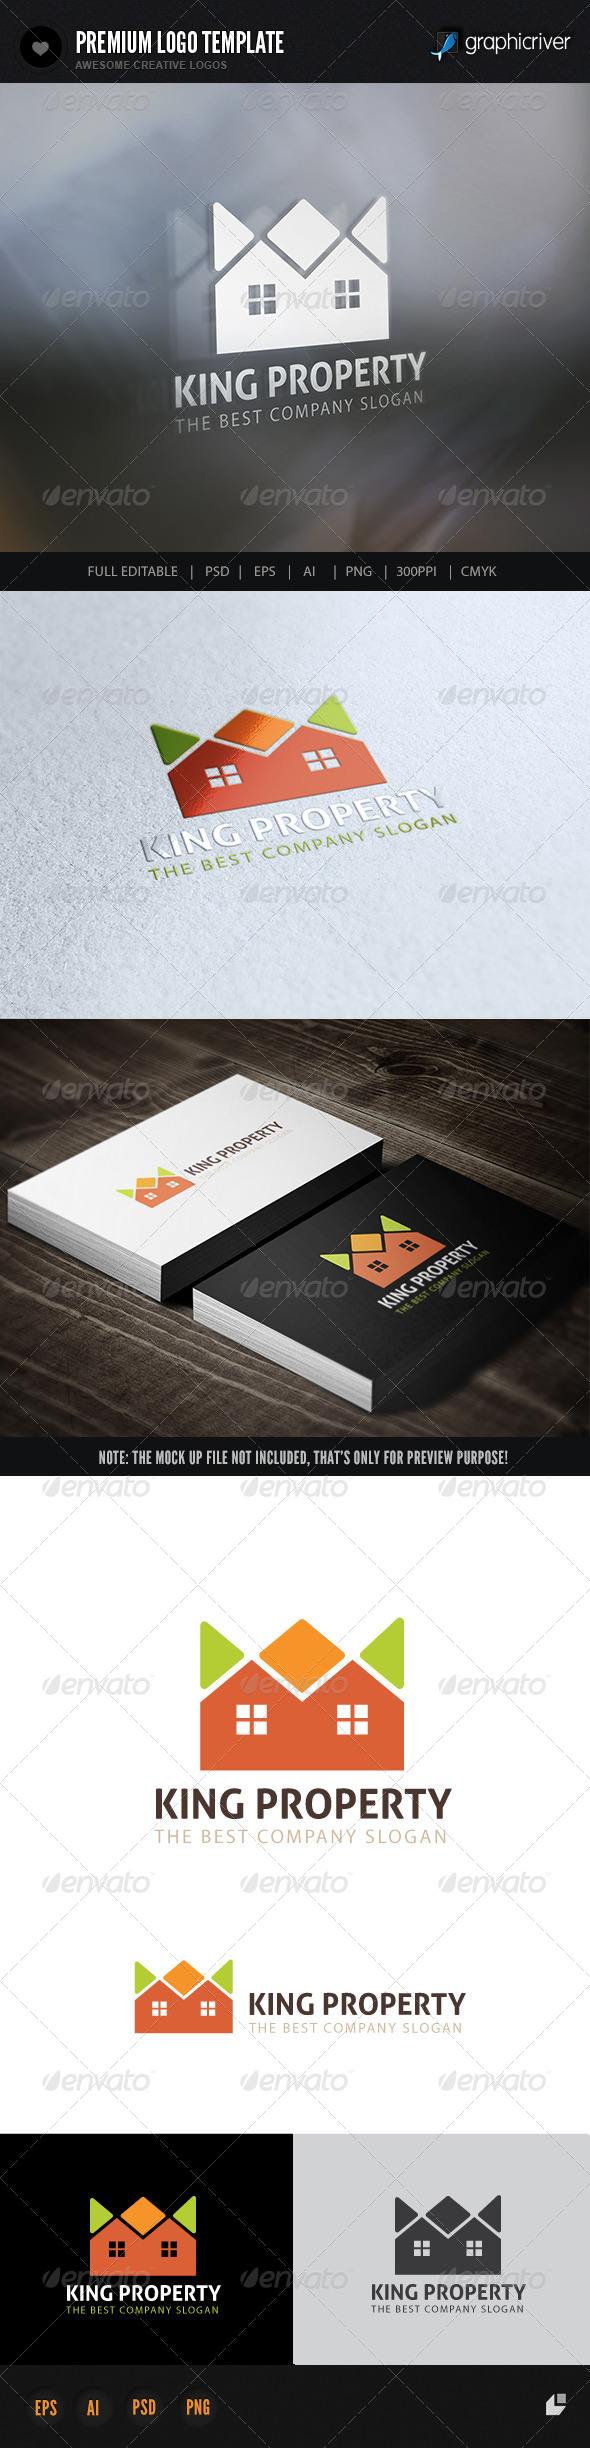 GraphicRiver Property King 6755595